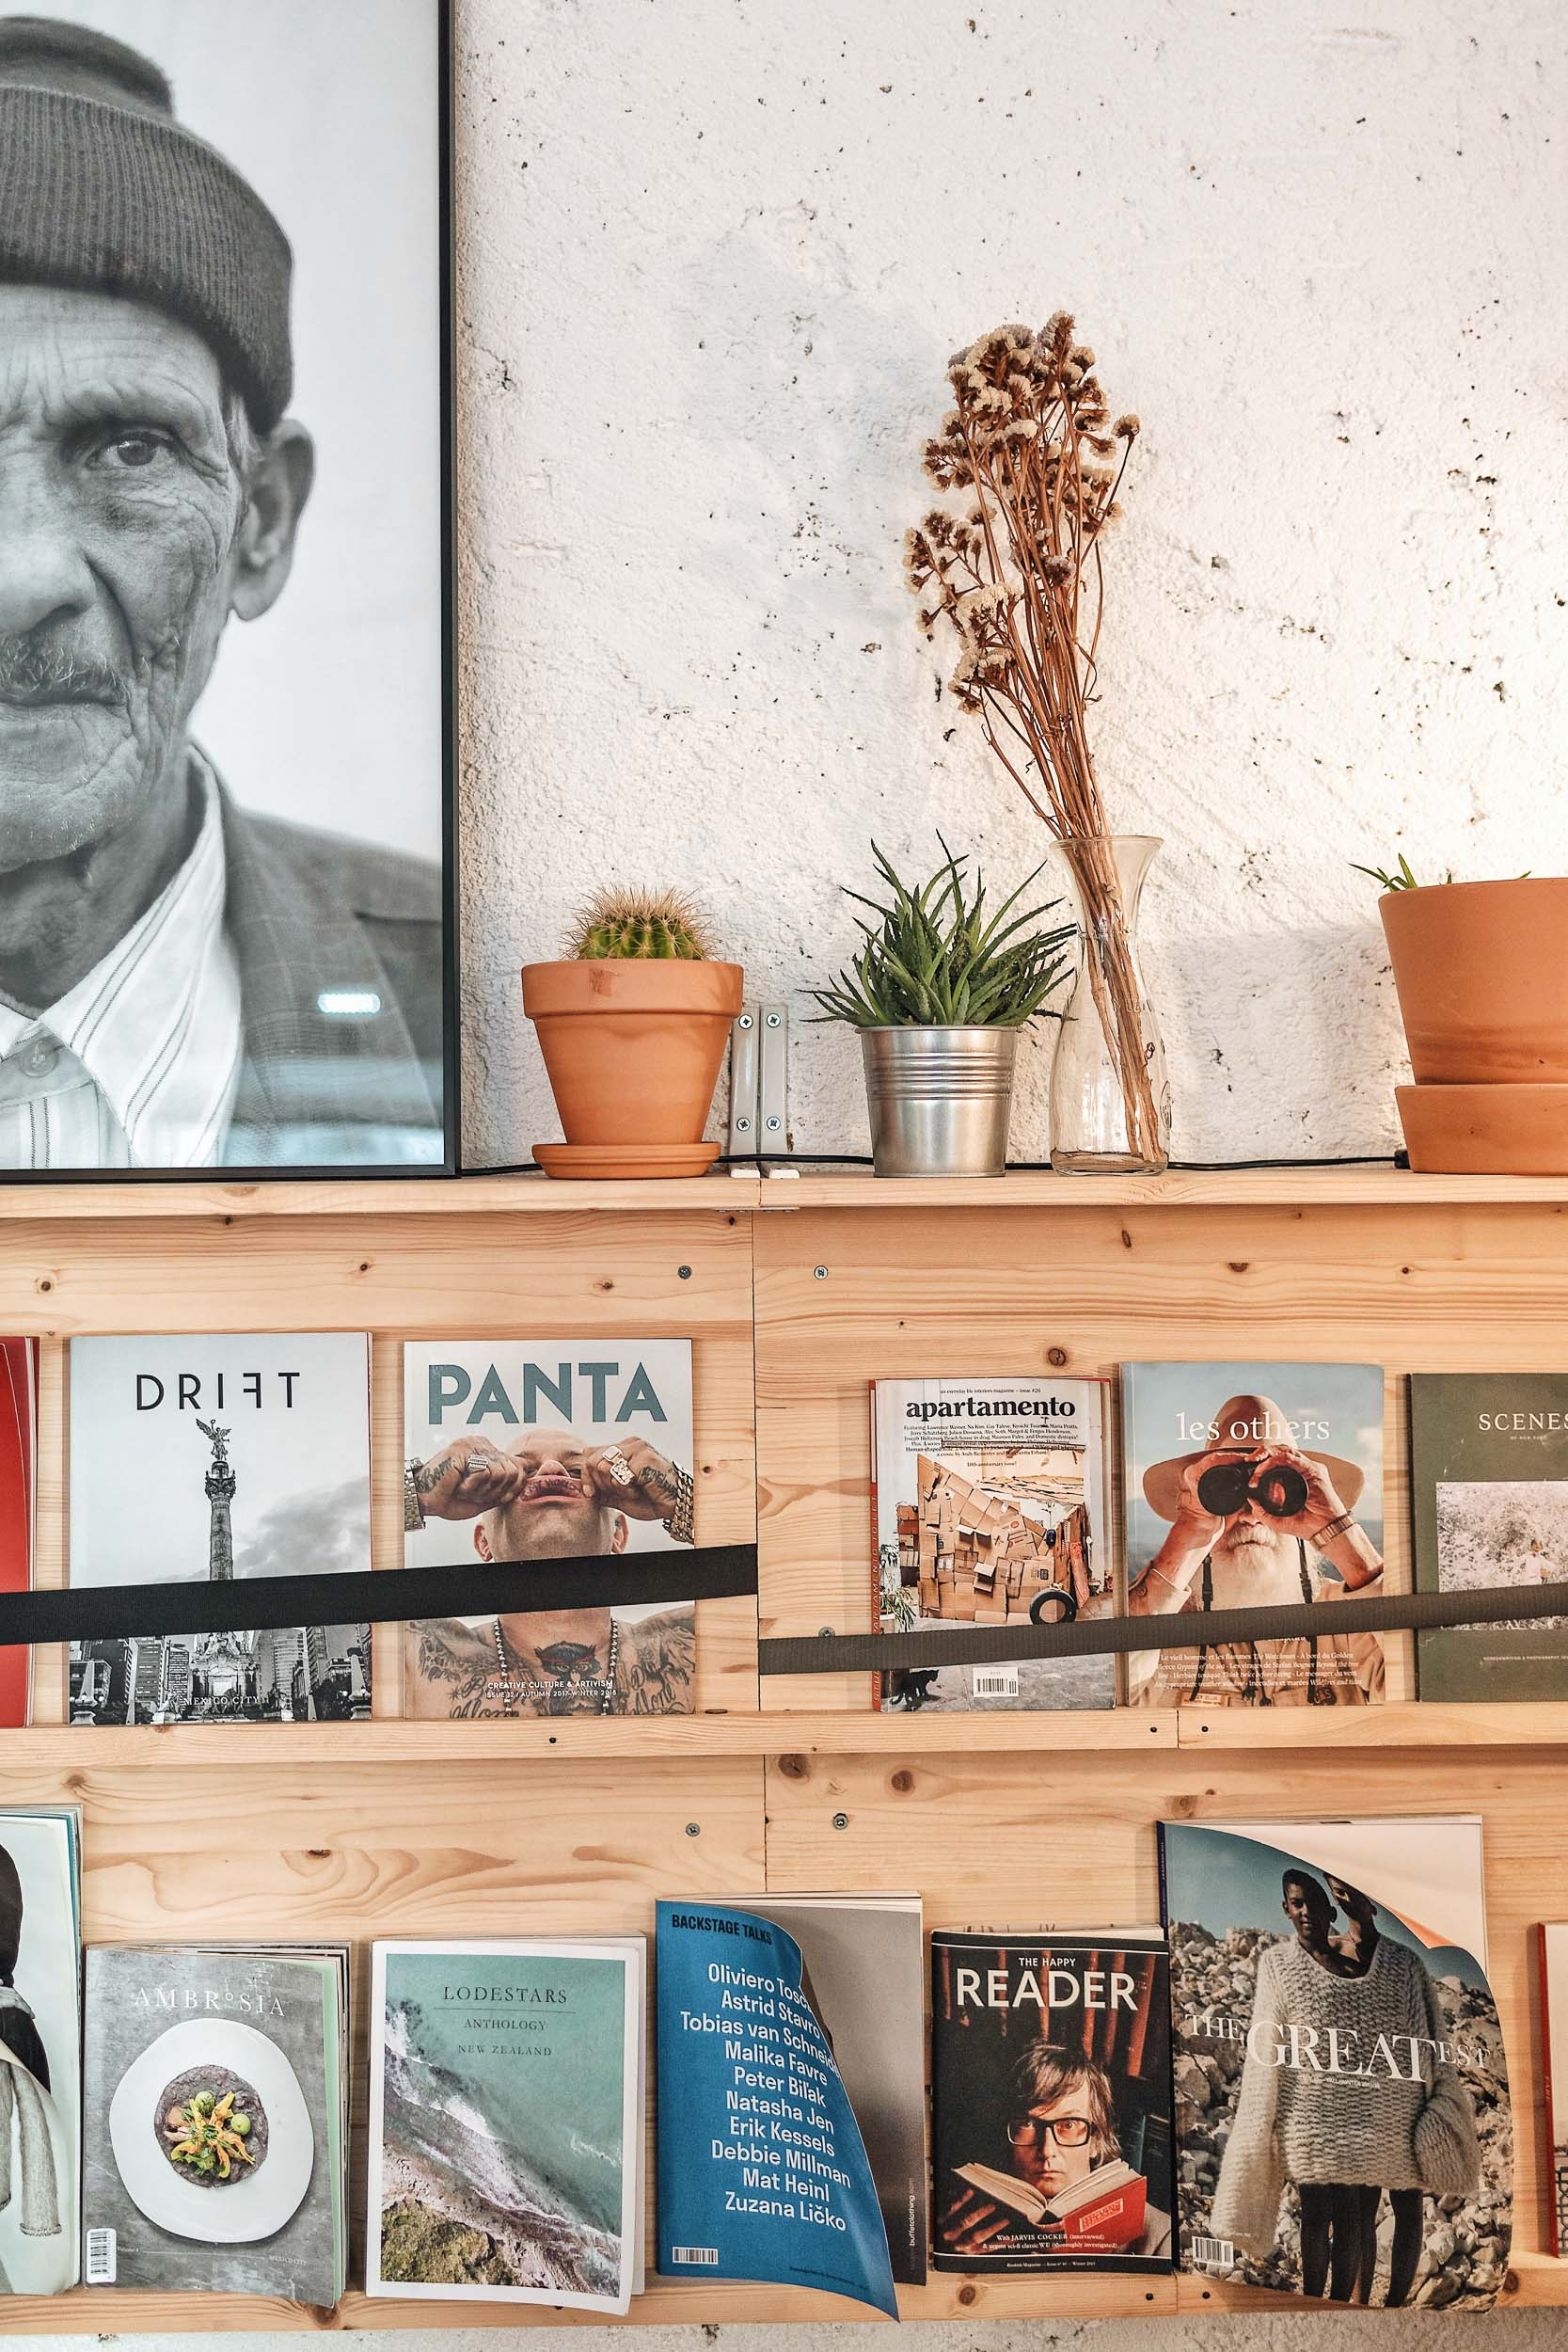 Hello, Kristof is a Lisbon-based specialty coffee shop filled with independent magazines